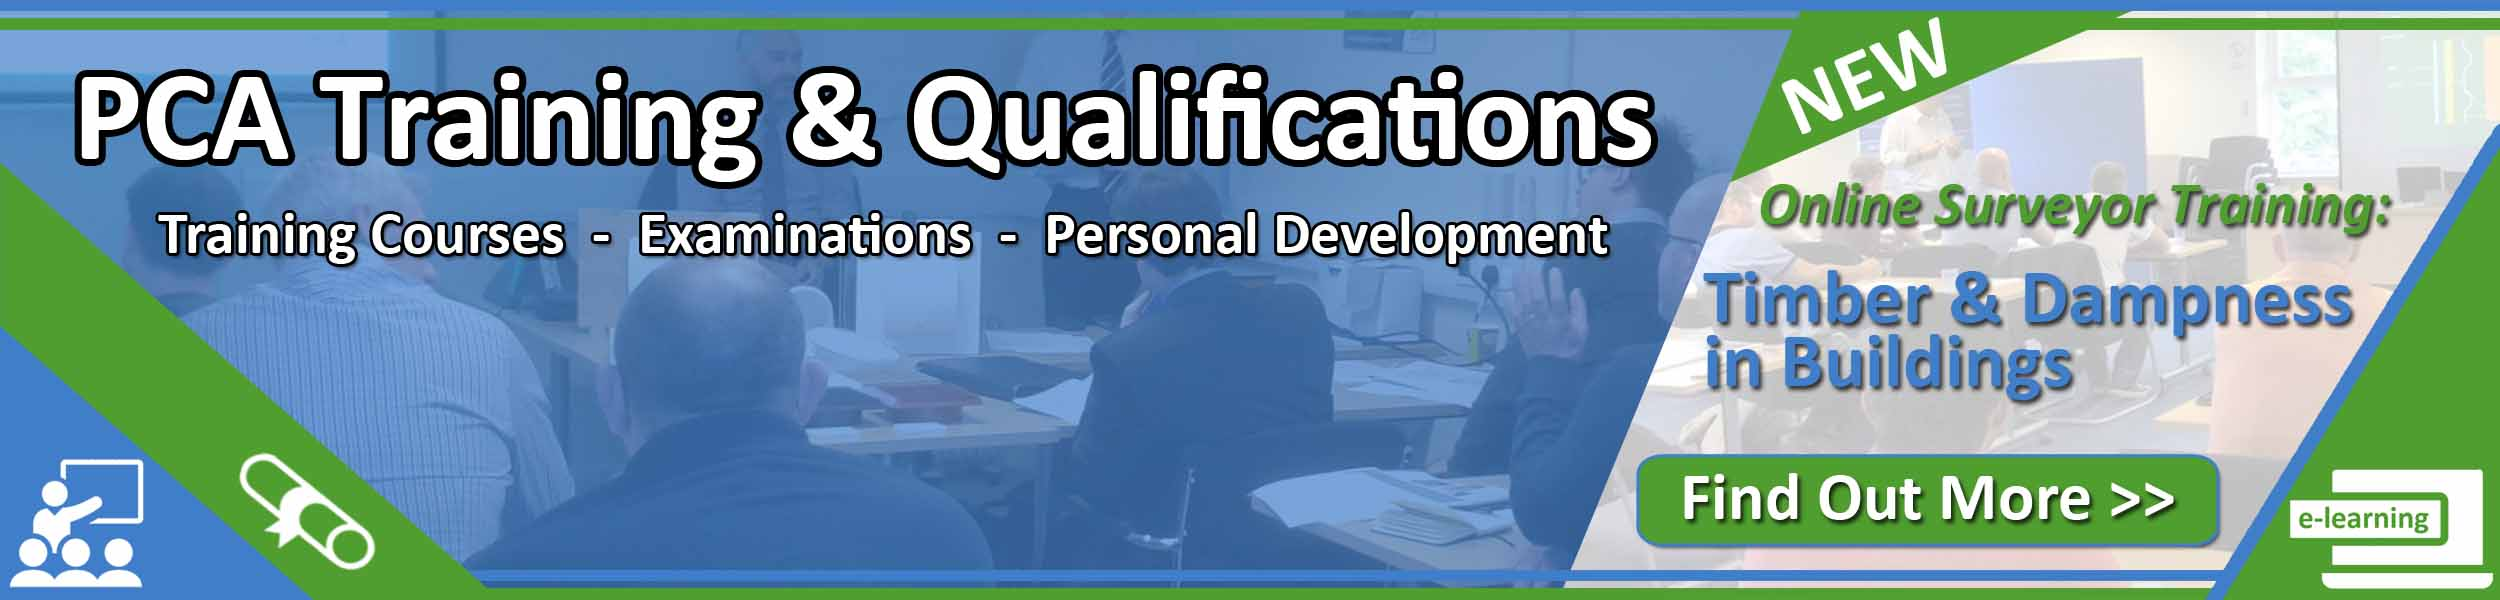 PCA Training & Qaulifications - Property Care Association